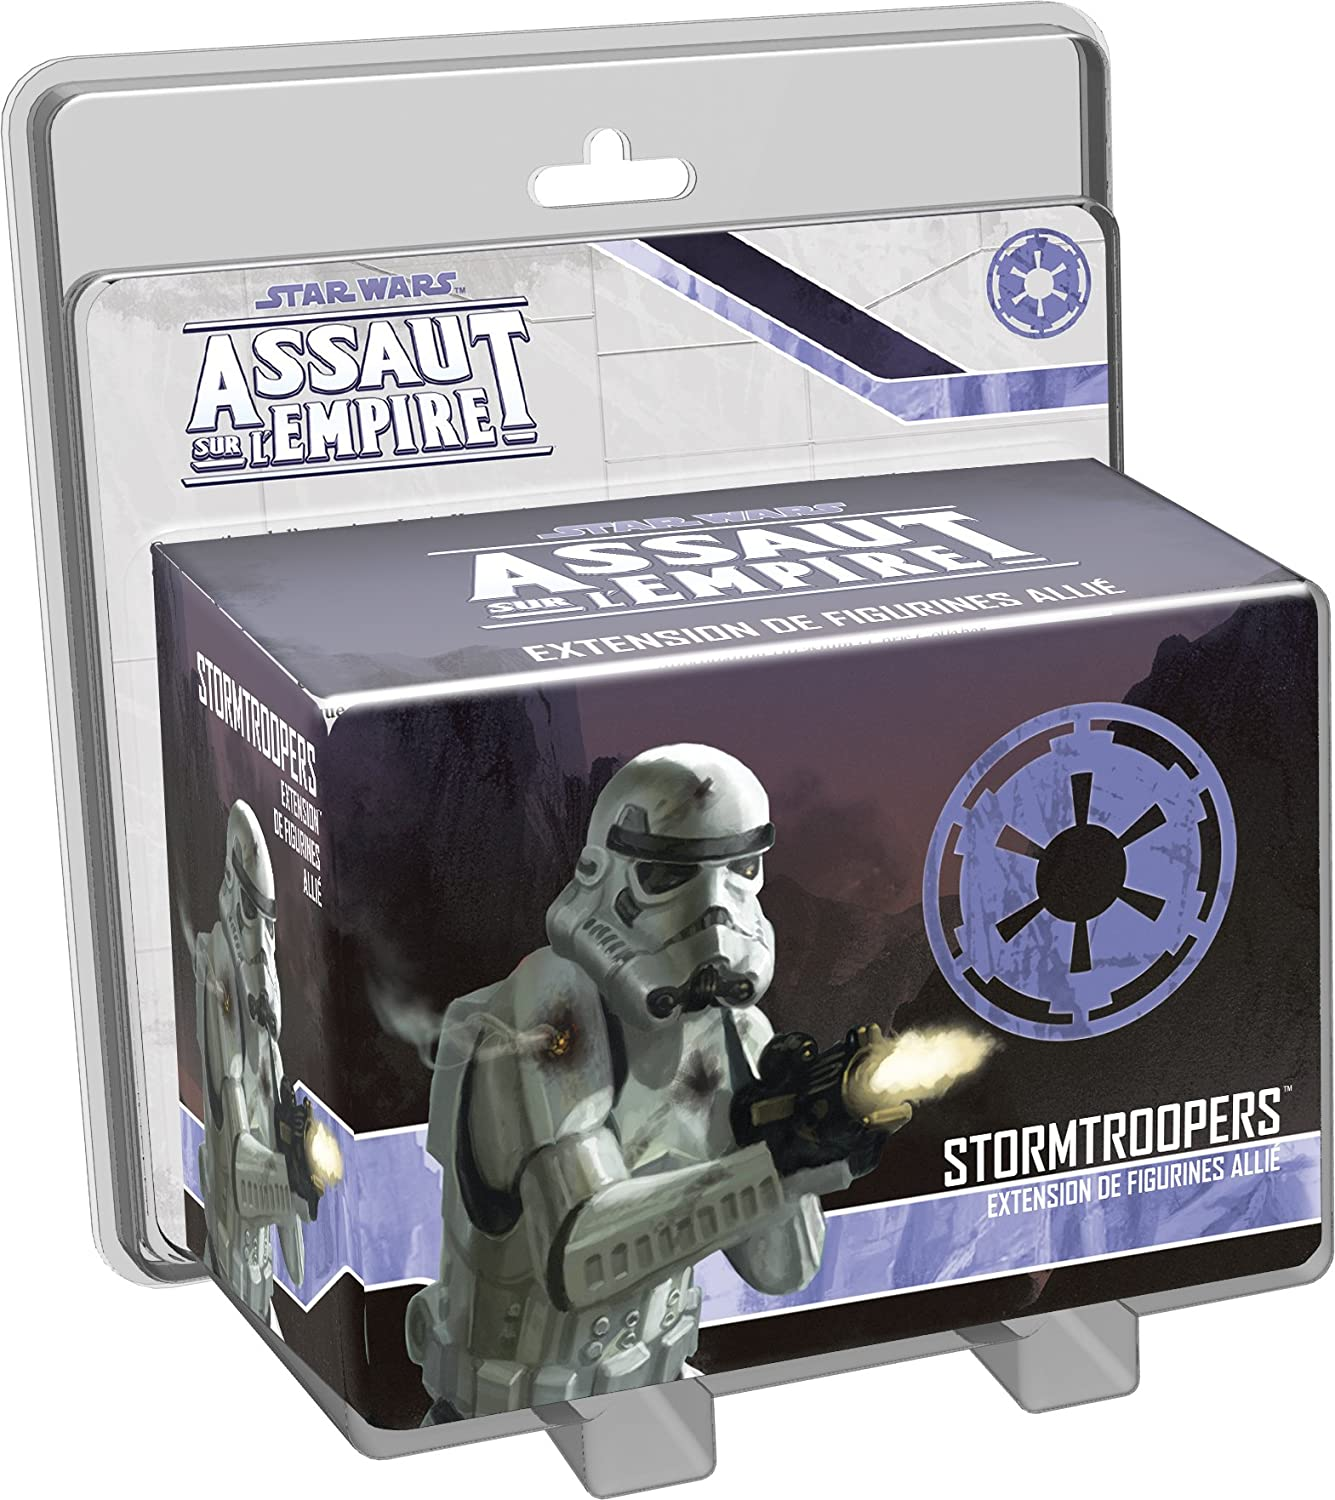 Asmodee ubiswi14  Star Wars  Assault on The Empire  Stormtroopers